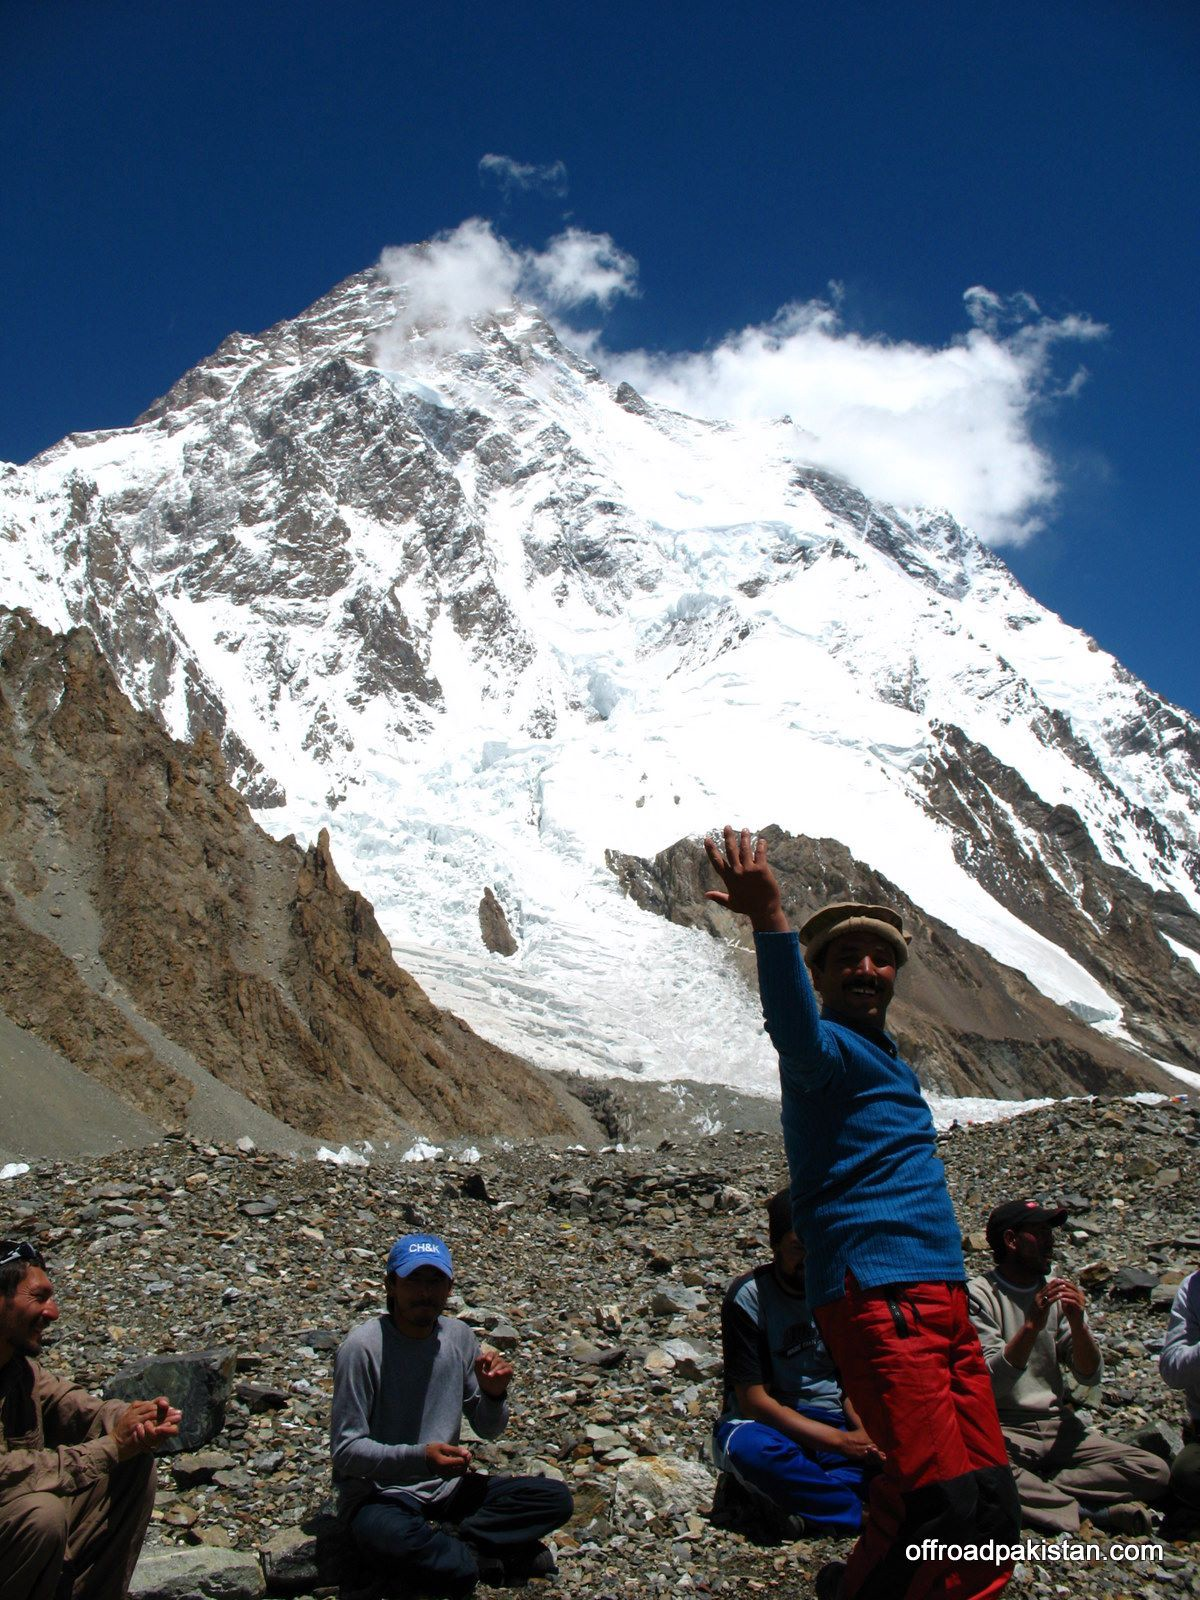 A hike to K2 Base Camp, 2007 – Offroad Pakistan – Medium